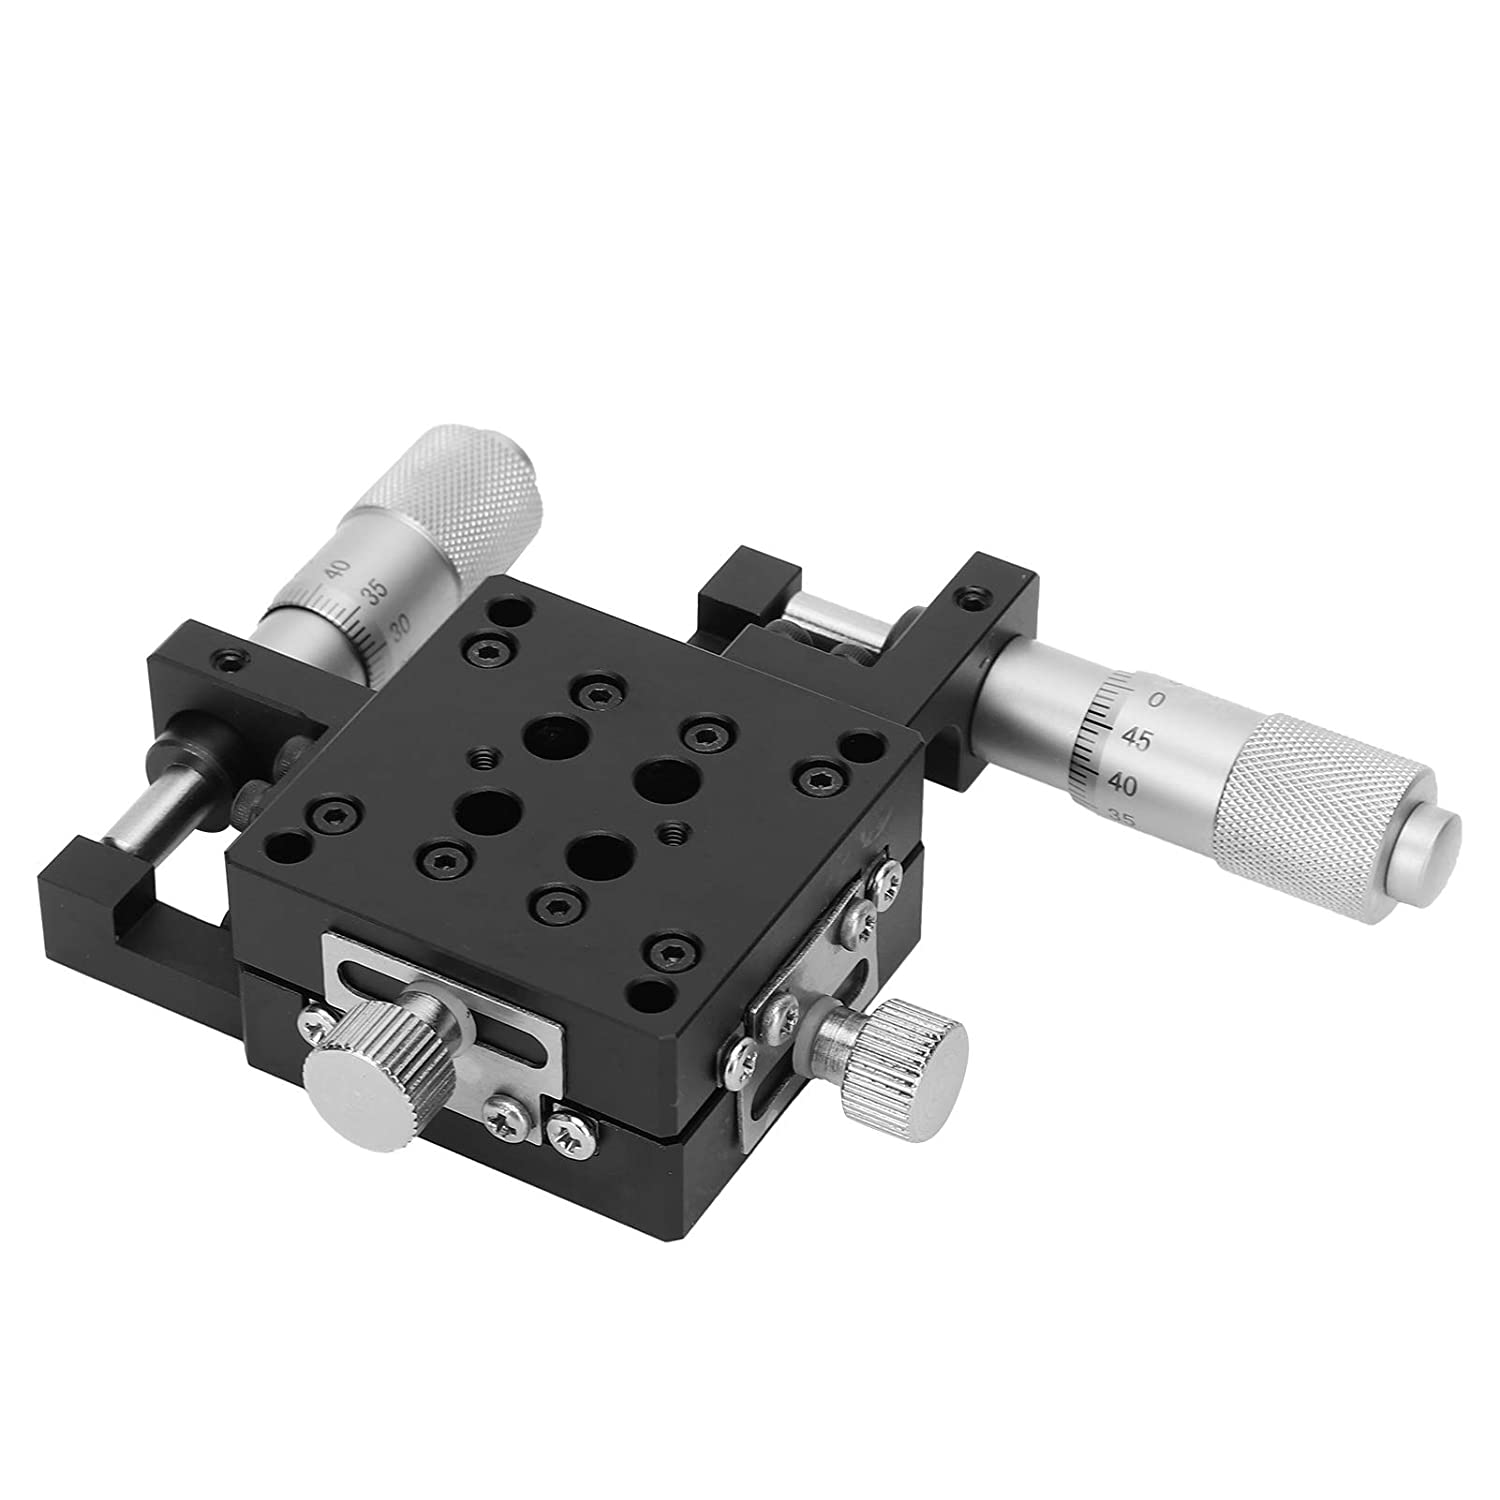 【Christmas Gift】Manual Linear Stage X-Axis Linear Stage Linear Sliding Table XY Axis Manual Platform Cross Roller Guide Type Stage 40x40mm SEMYW40‑AS